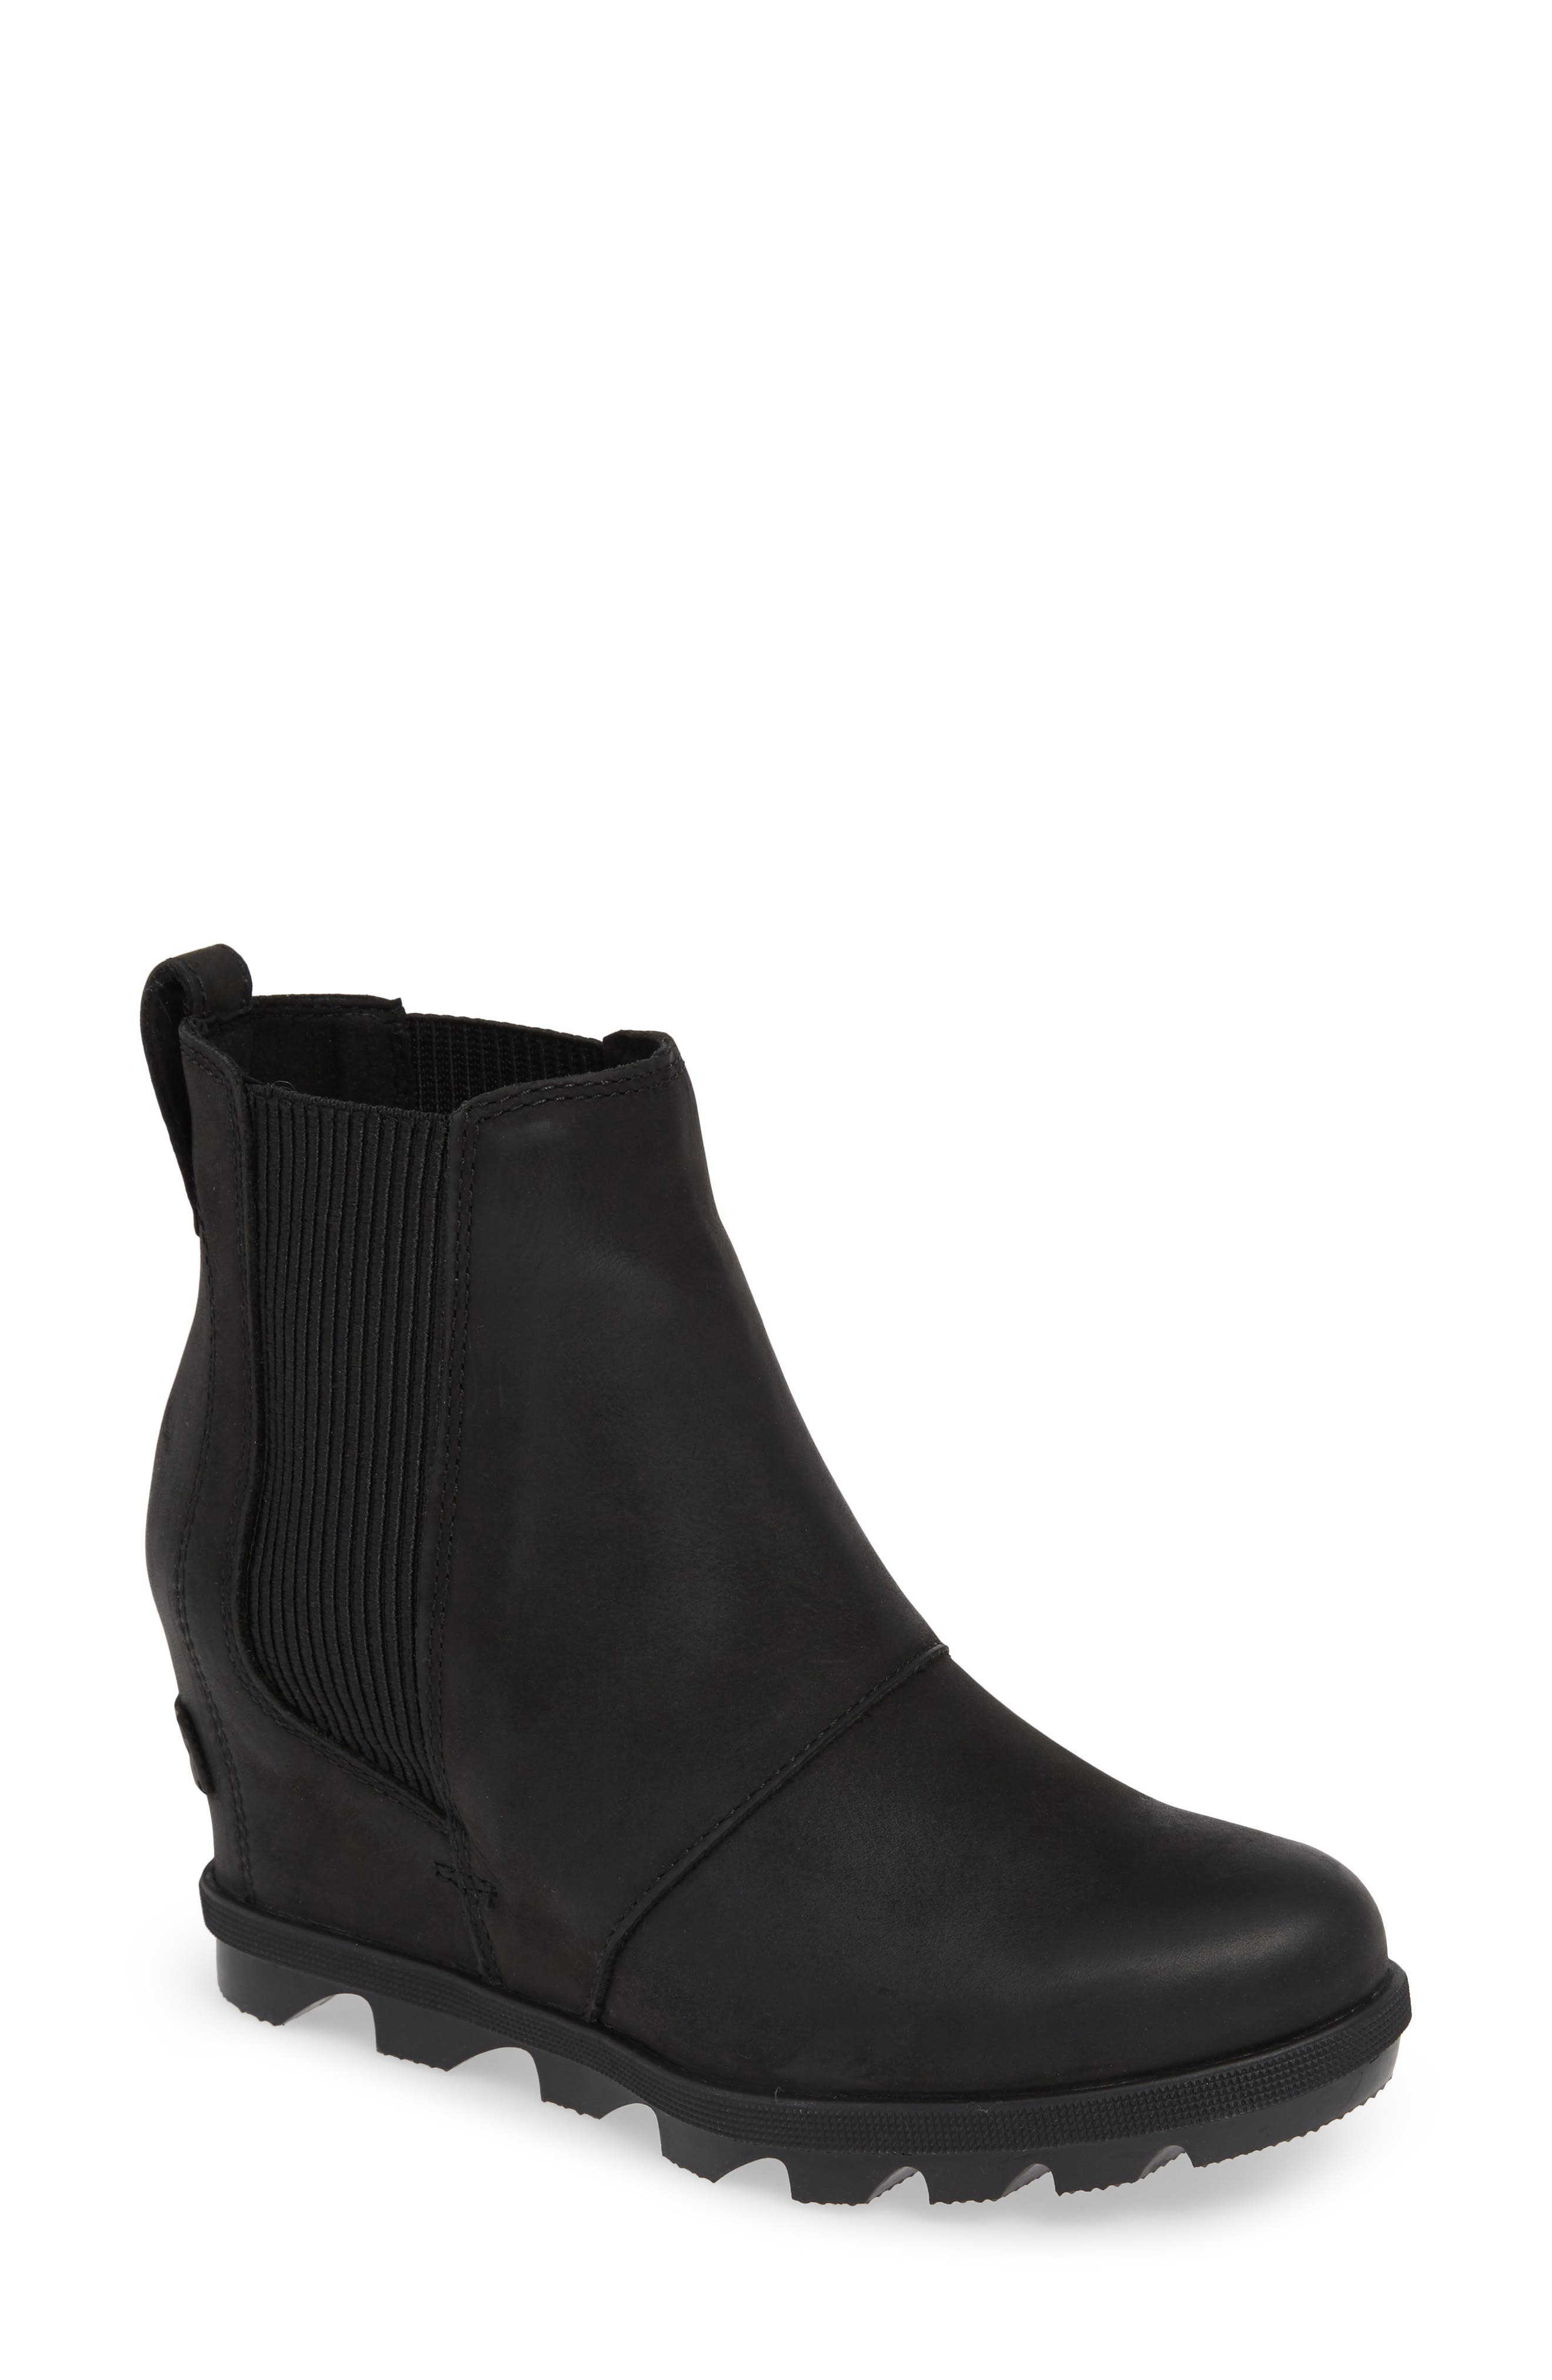 SOREL Joan of Arctic II Waterproof Wedge Bootie, Main, color, BLACK